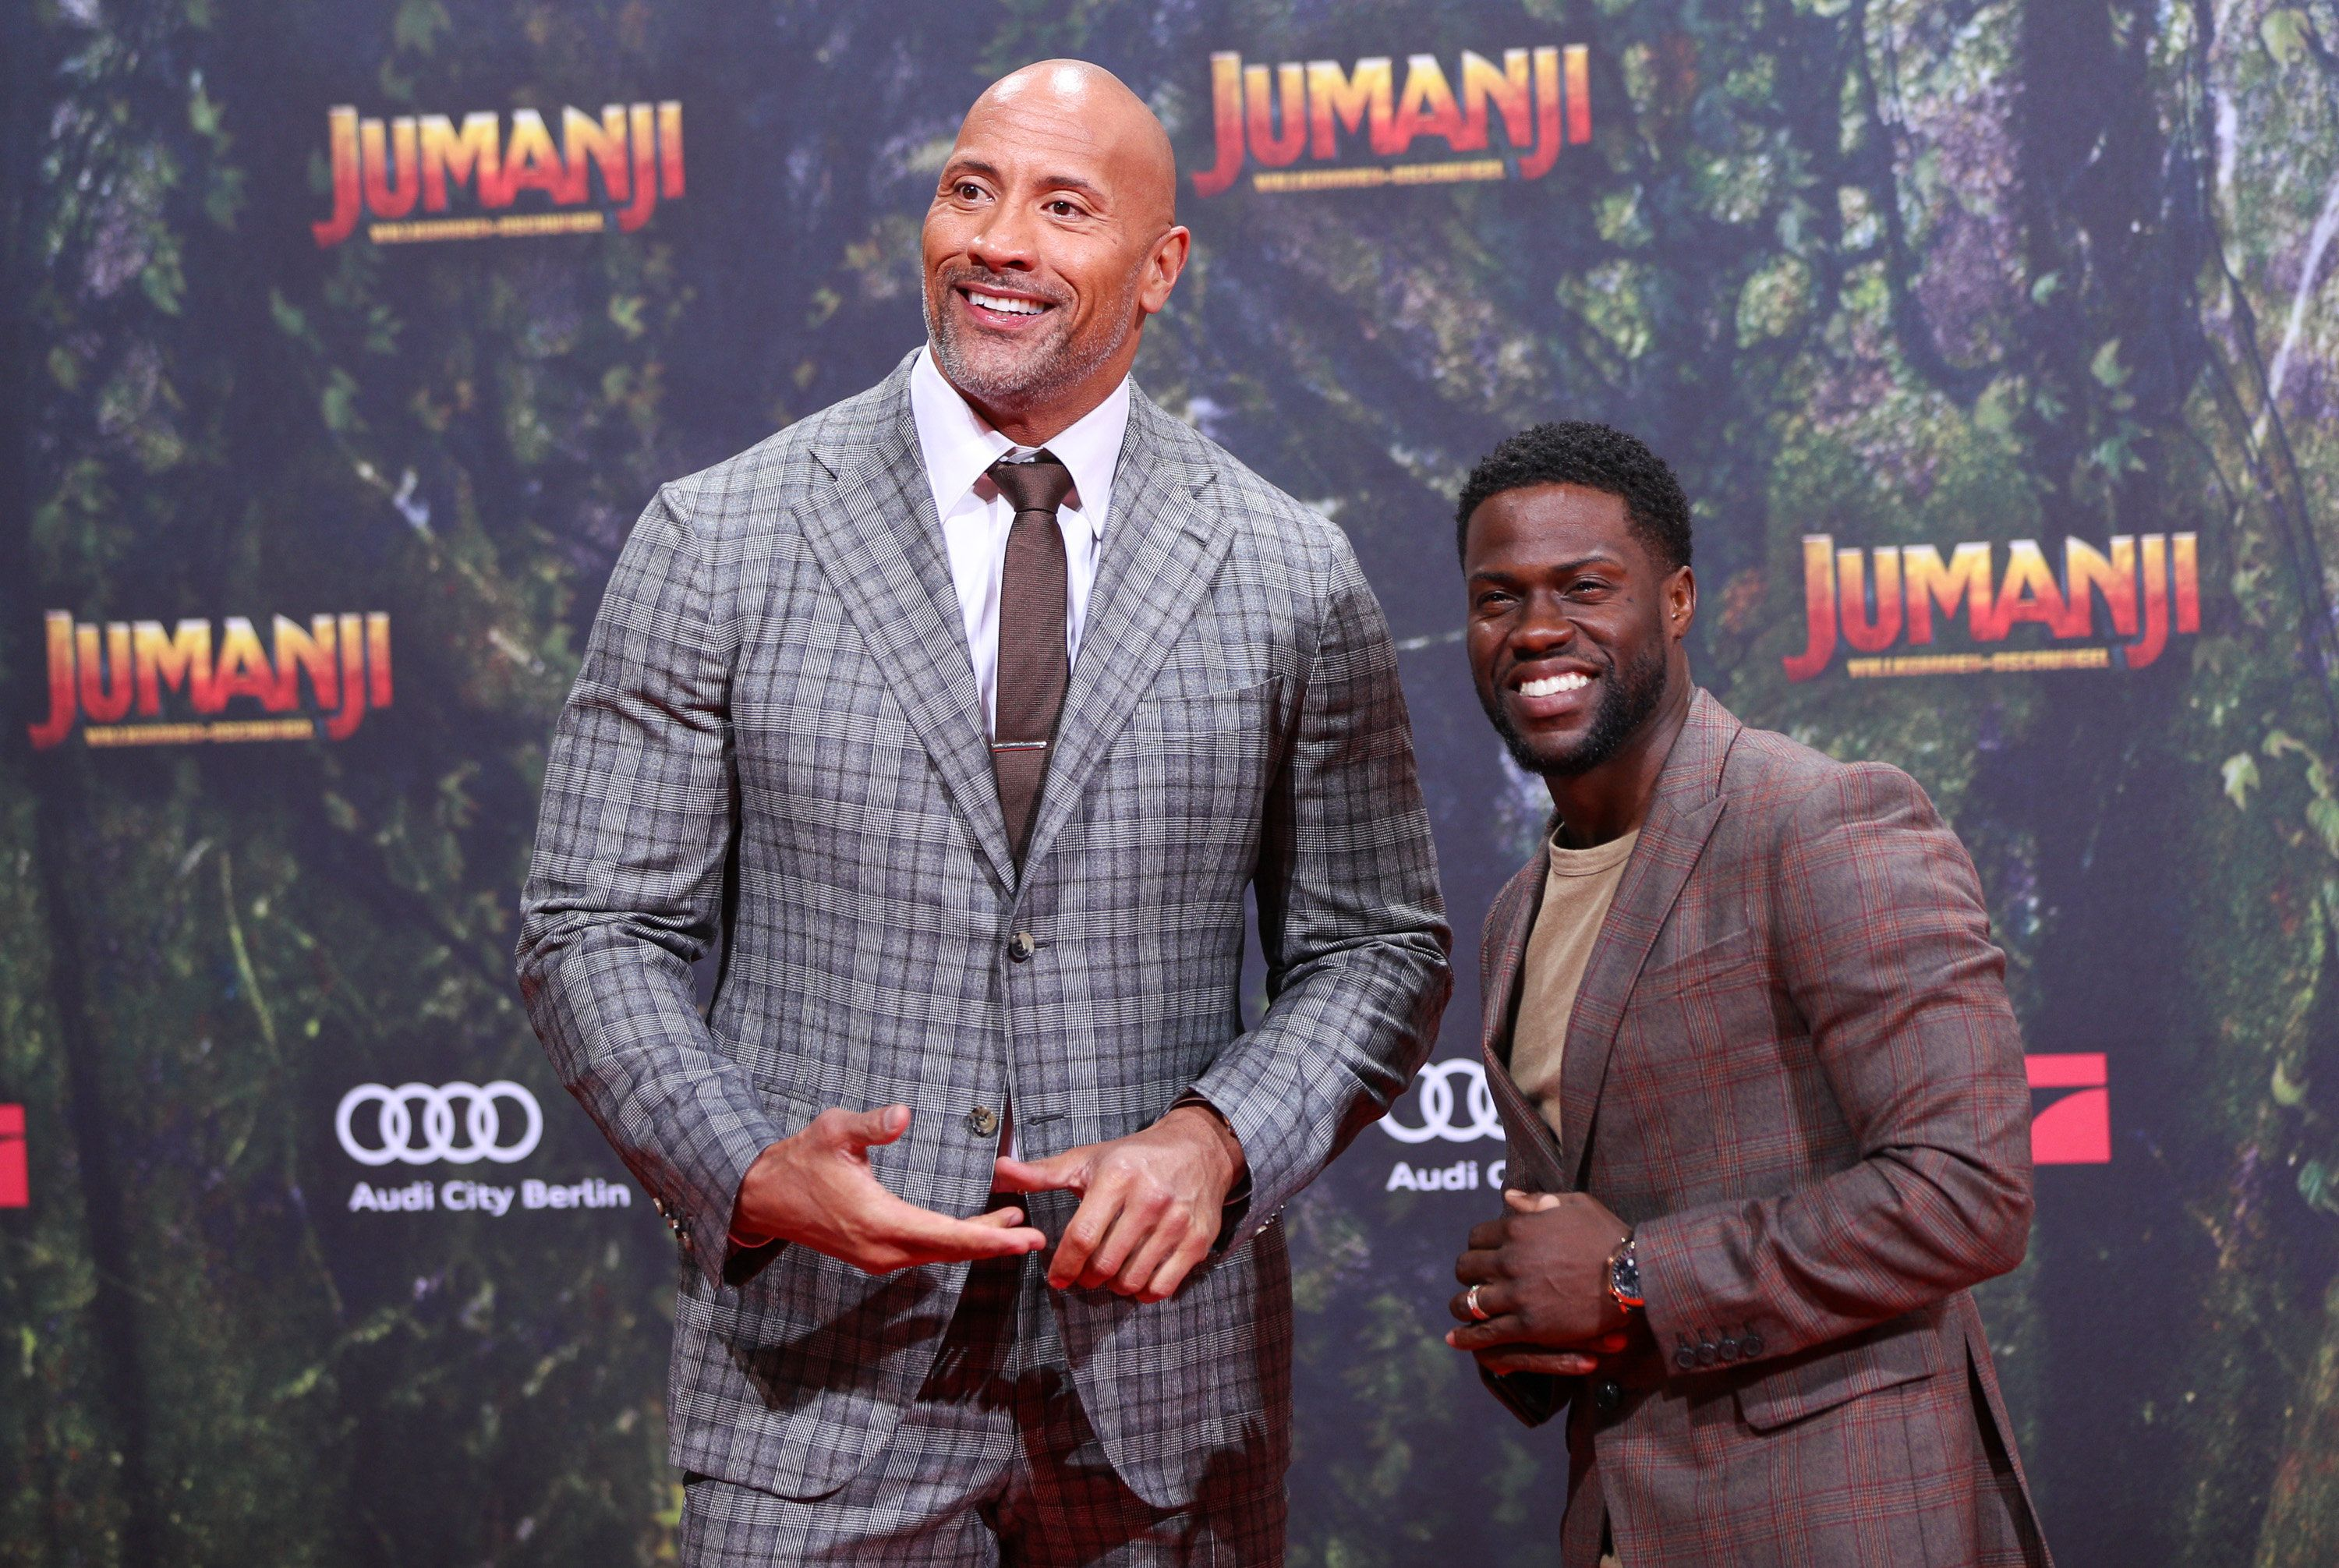 BERLIN, GERMANY - DECEMBER 06:  Dwayne Johnson and Kevin Hart arrive at the German premiere of 'Jumanji: Willkommen im Dschungel' at Sony Centre on December 6, 2017 in Berlin, Germany.  (Photo by Brian Dowling/WireImage)